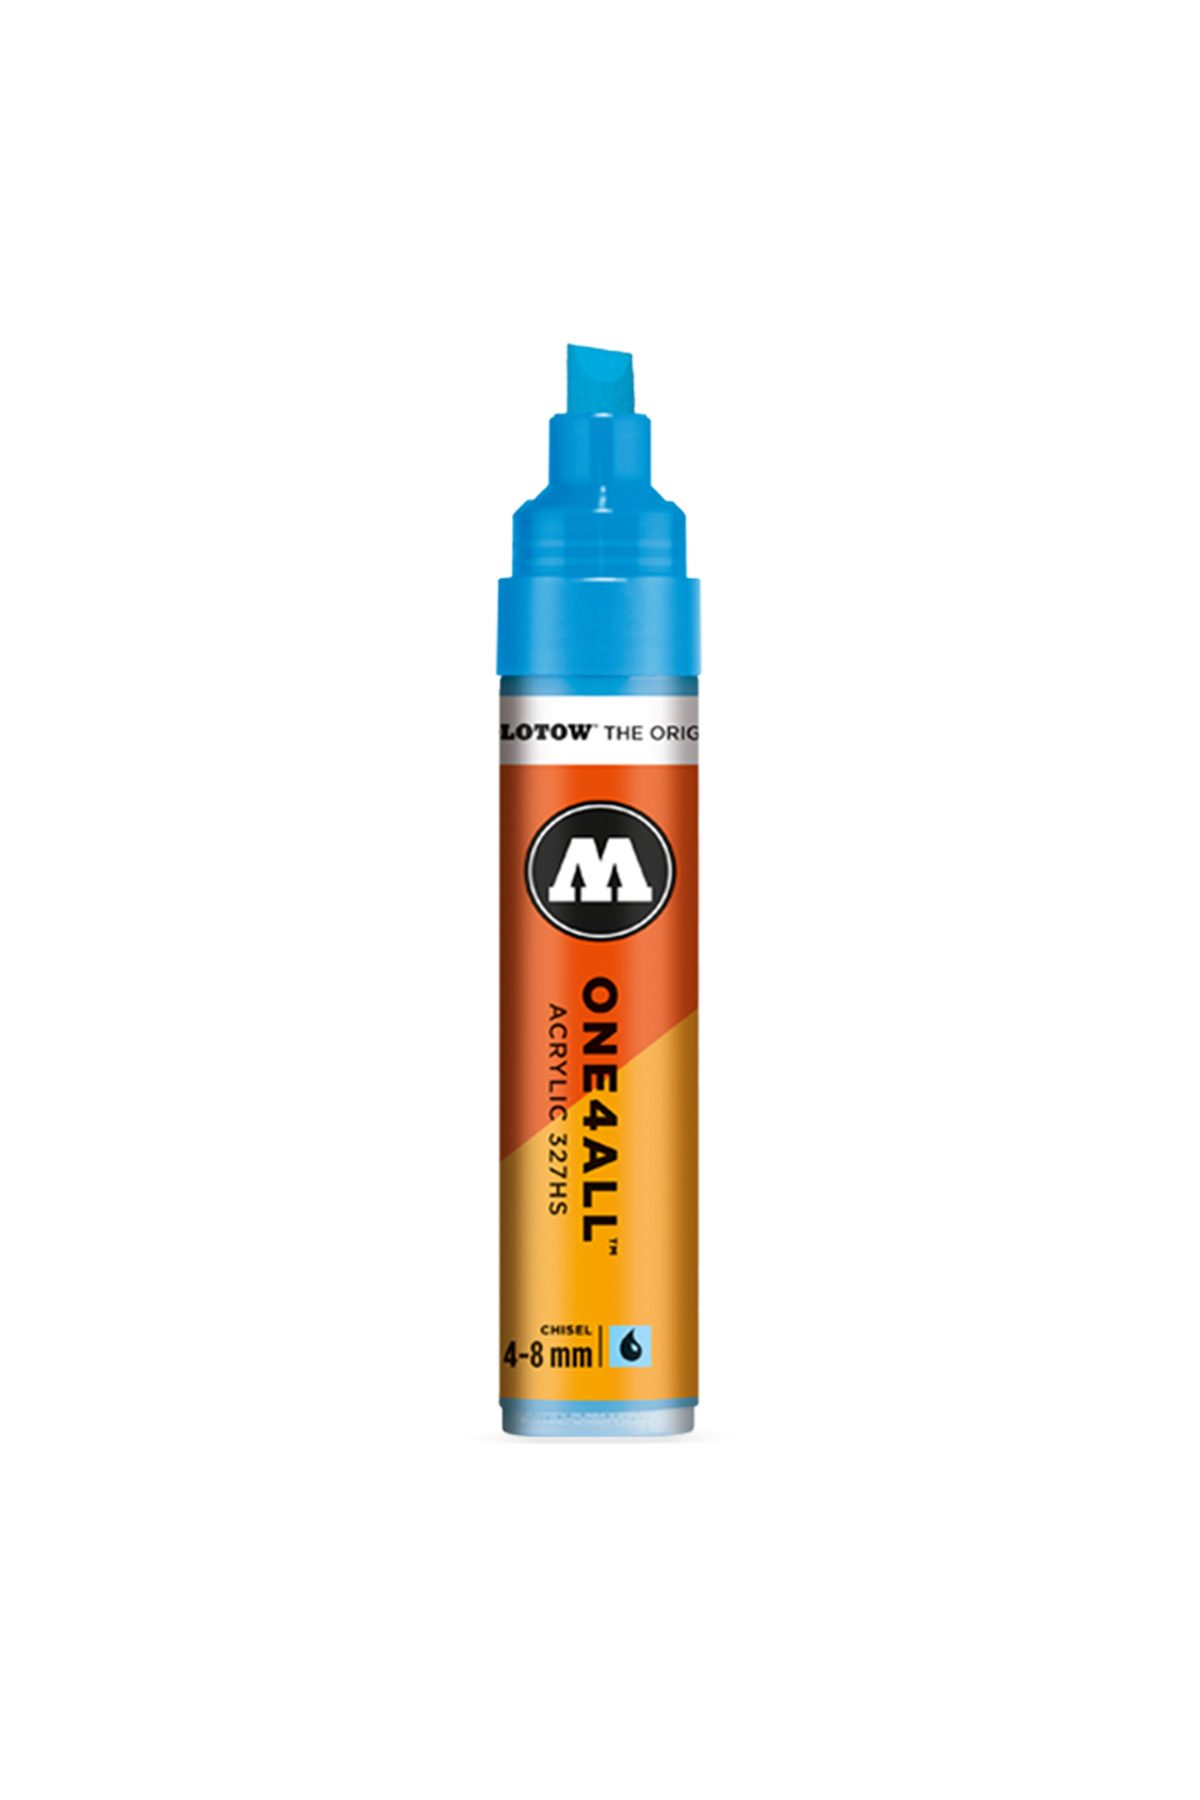 Molotow ONE4ALL-327HS Marker 4-8mm